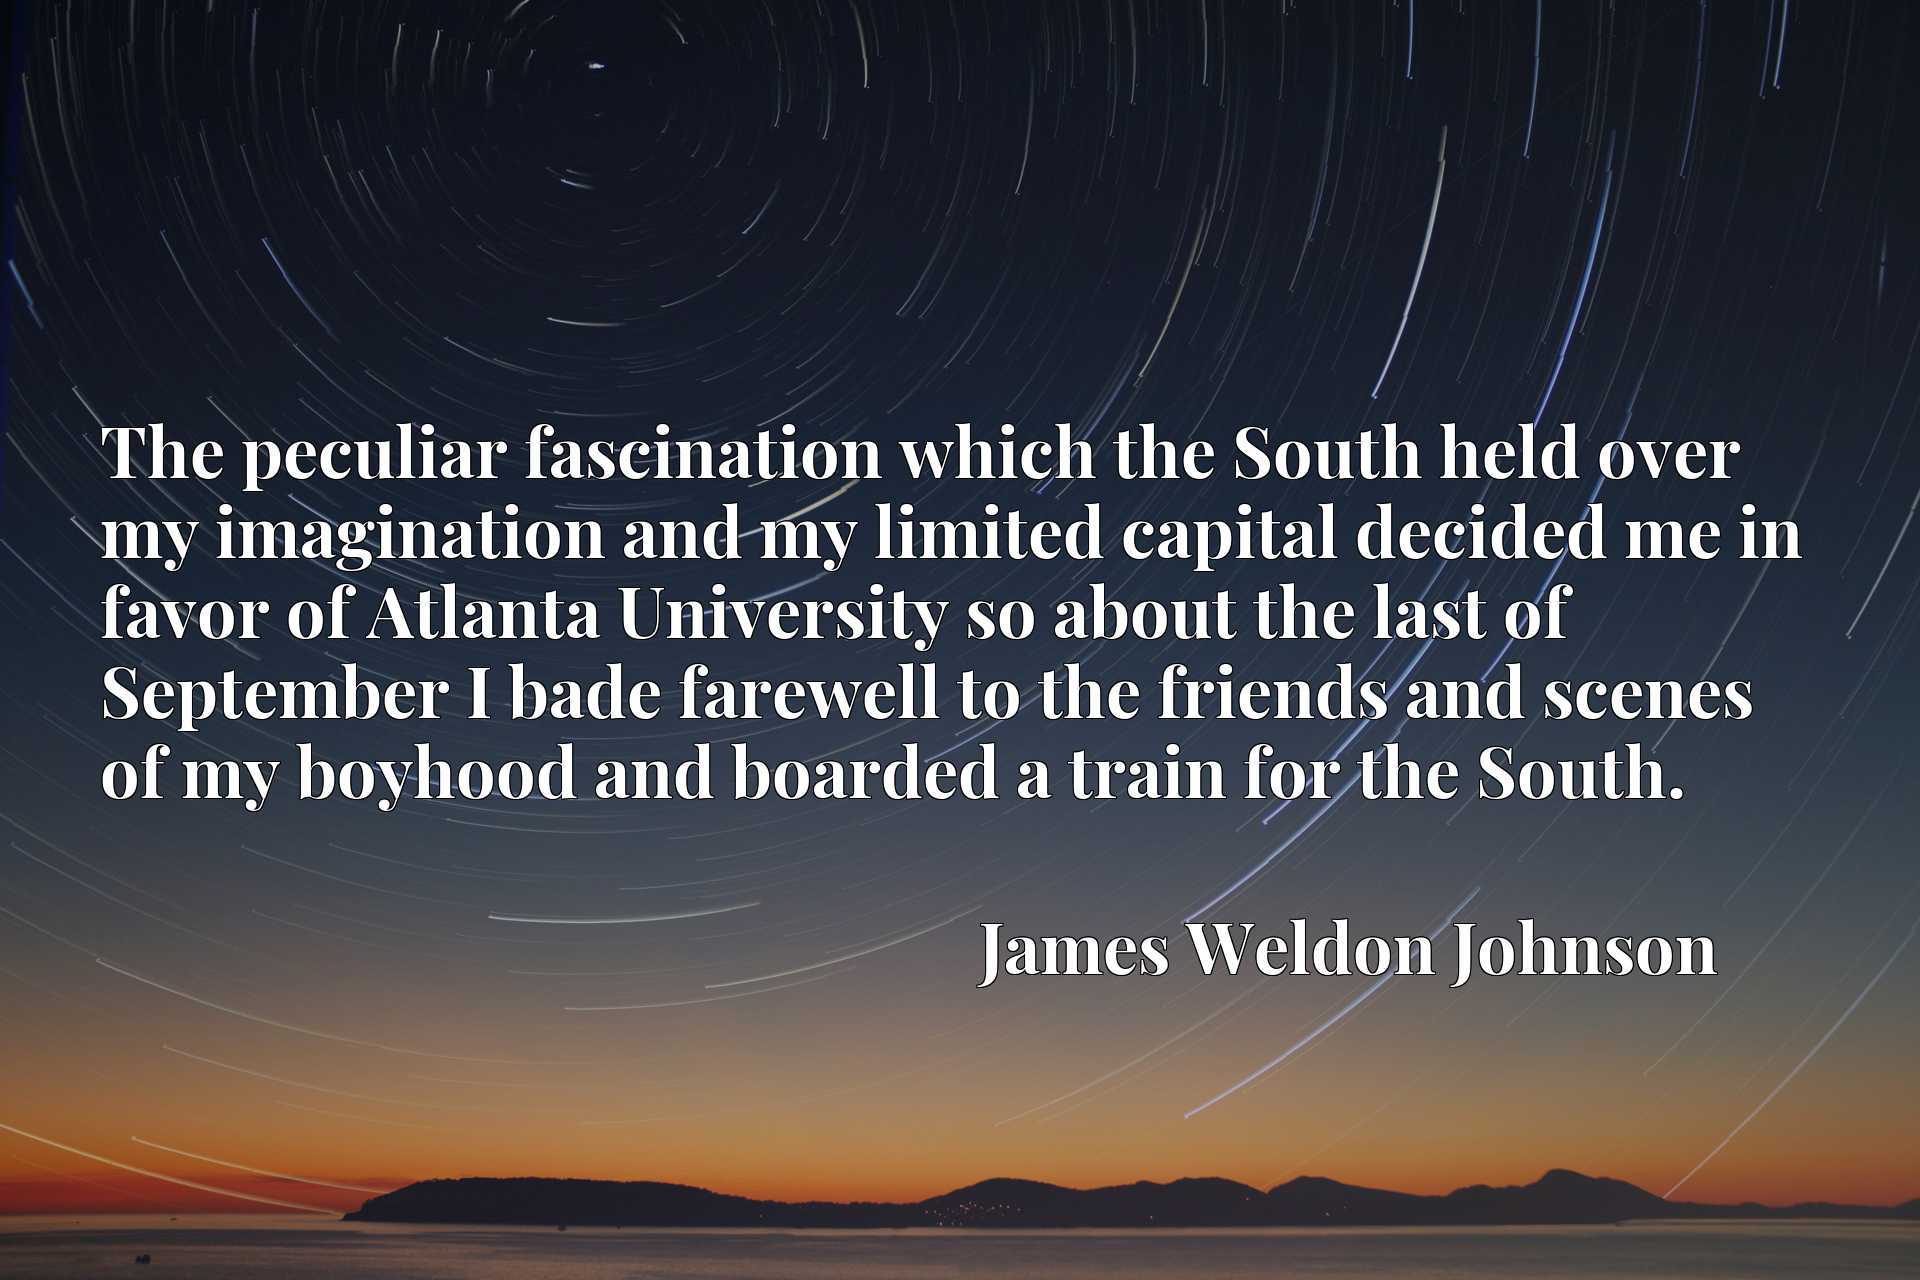 The peculiar fascination which the South held over my imagination and my limited capital decided me in favor of Atlanta University so about the last of September I bade farewell to the friends and scenes of my boyhood and boarded a train for the South.